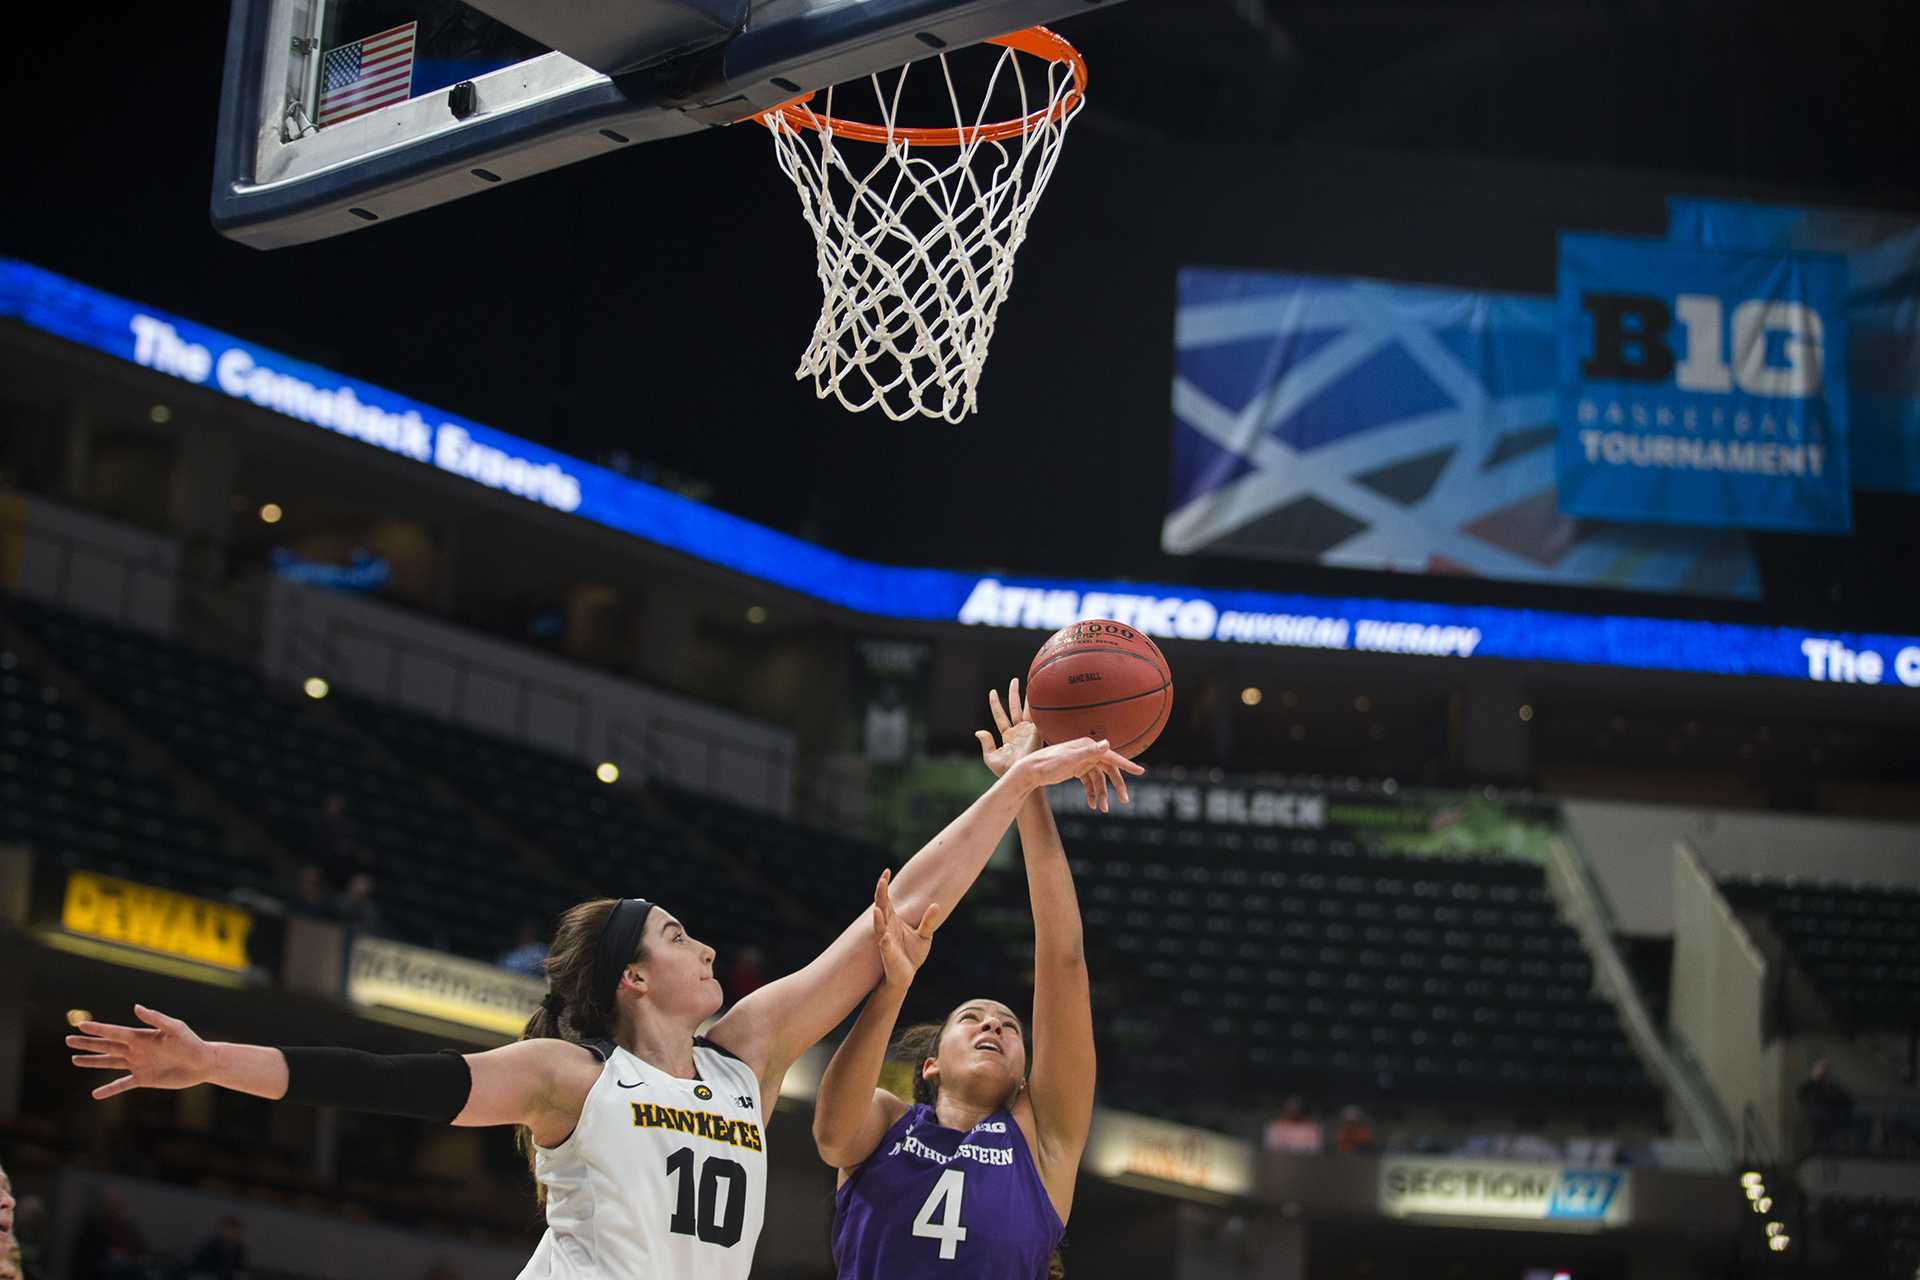 Iowa forward Megan Gustafson blocks a shot from Northwestern forward Bryana Hopkins during the Iowa/Northwestern Big Ten tournament basketball game at Bankers Life Fieldhouse in Indianapolis on Thursday, March, 1, 2018. The Hawkeyes defeated the Wildcats, 55-45. Iowa takes on No.4 Minnesota on Friday. (Lily Smith/The Daily Iowan)